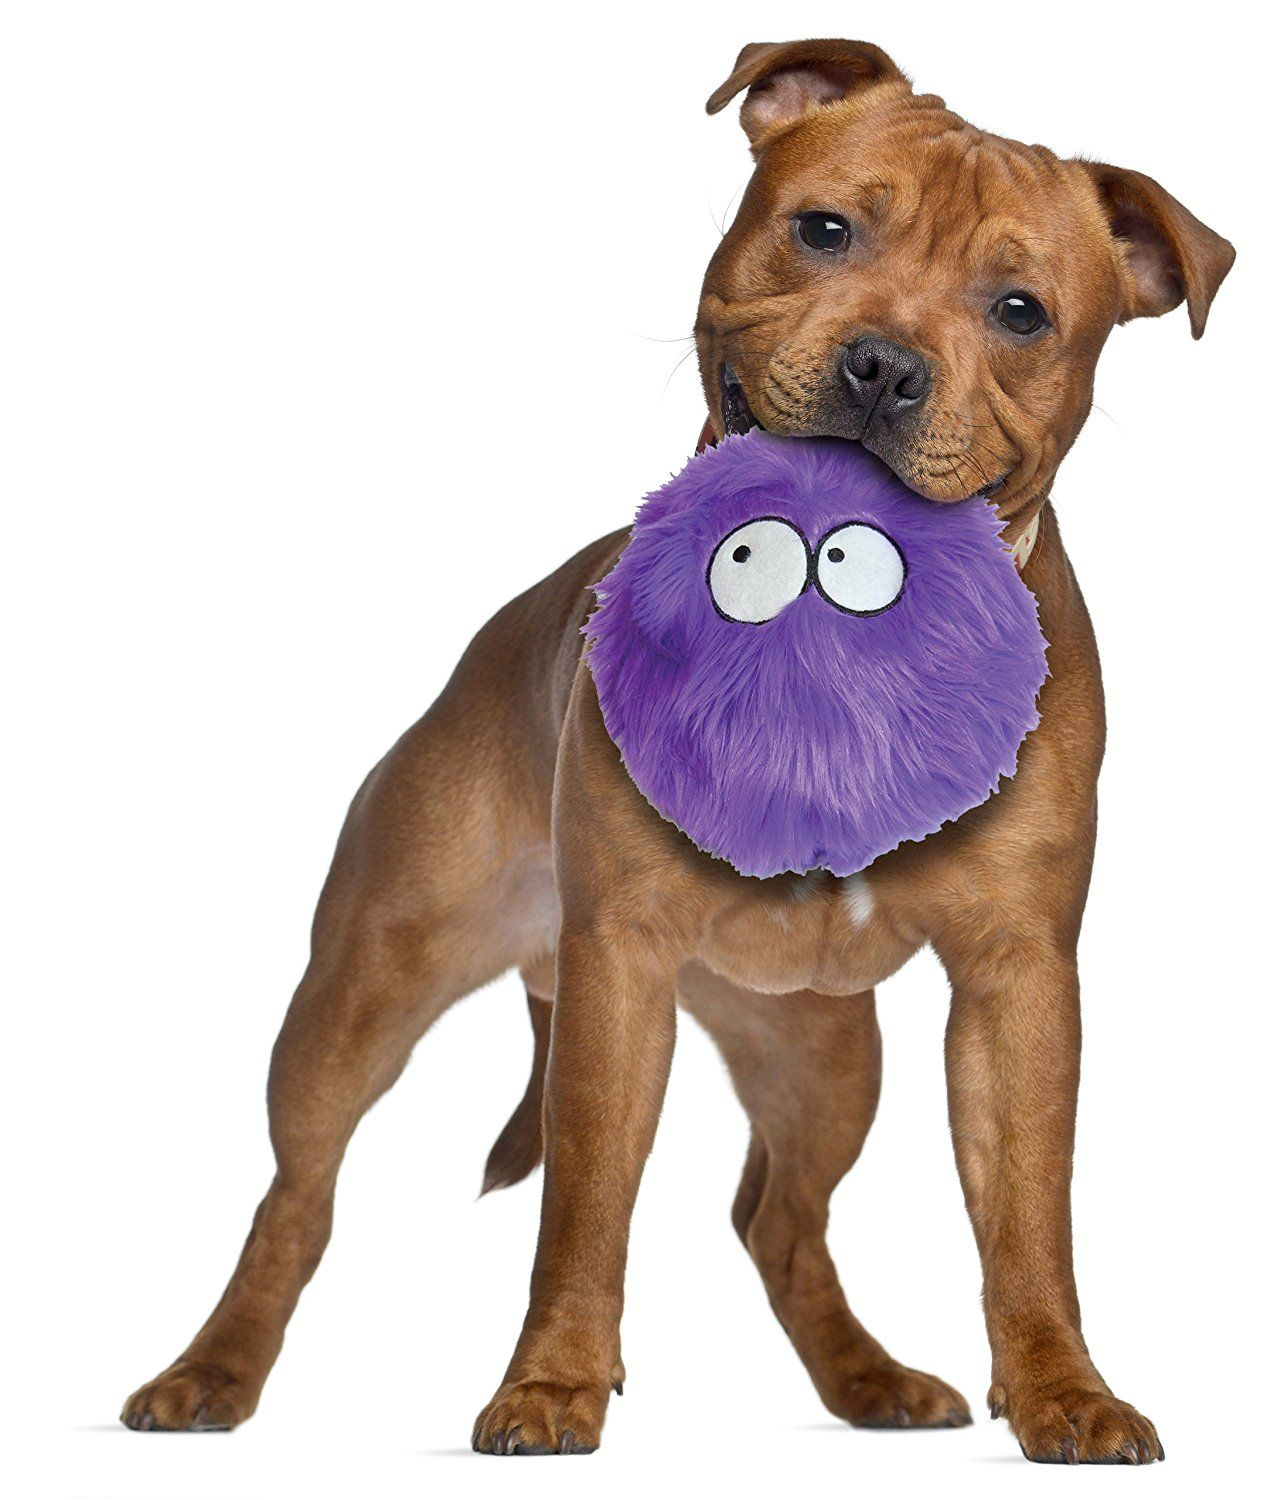 Best Indestructible Dog Toys For Labradors And Other Breeds Cute